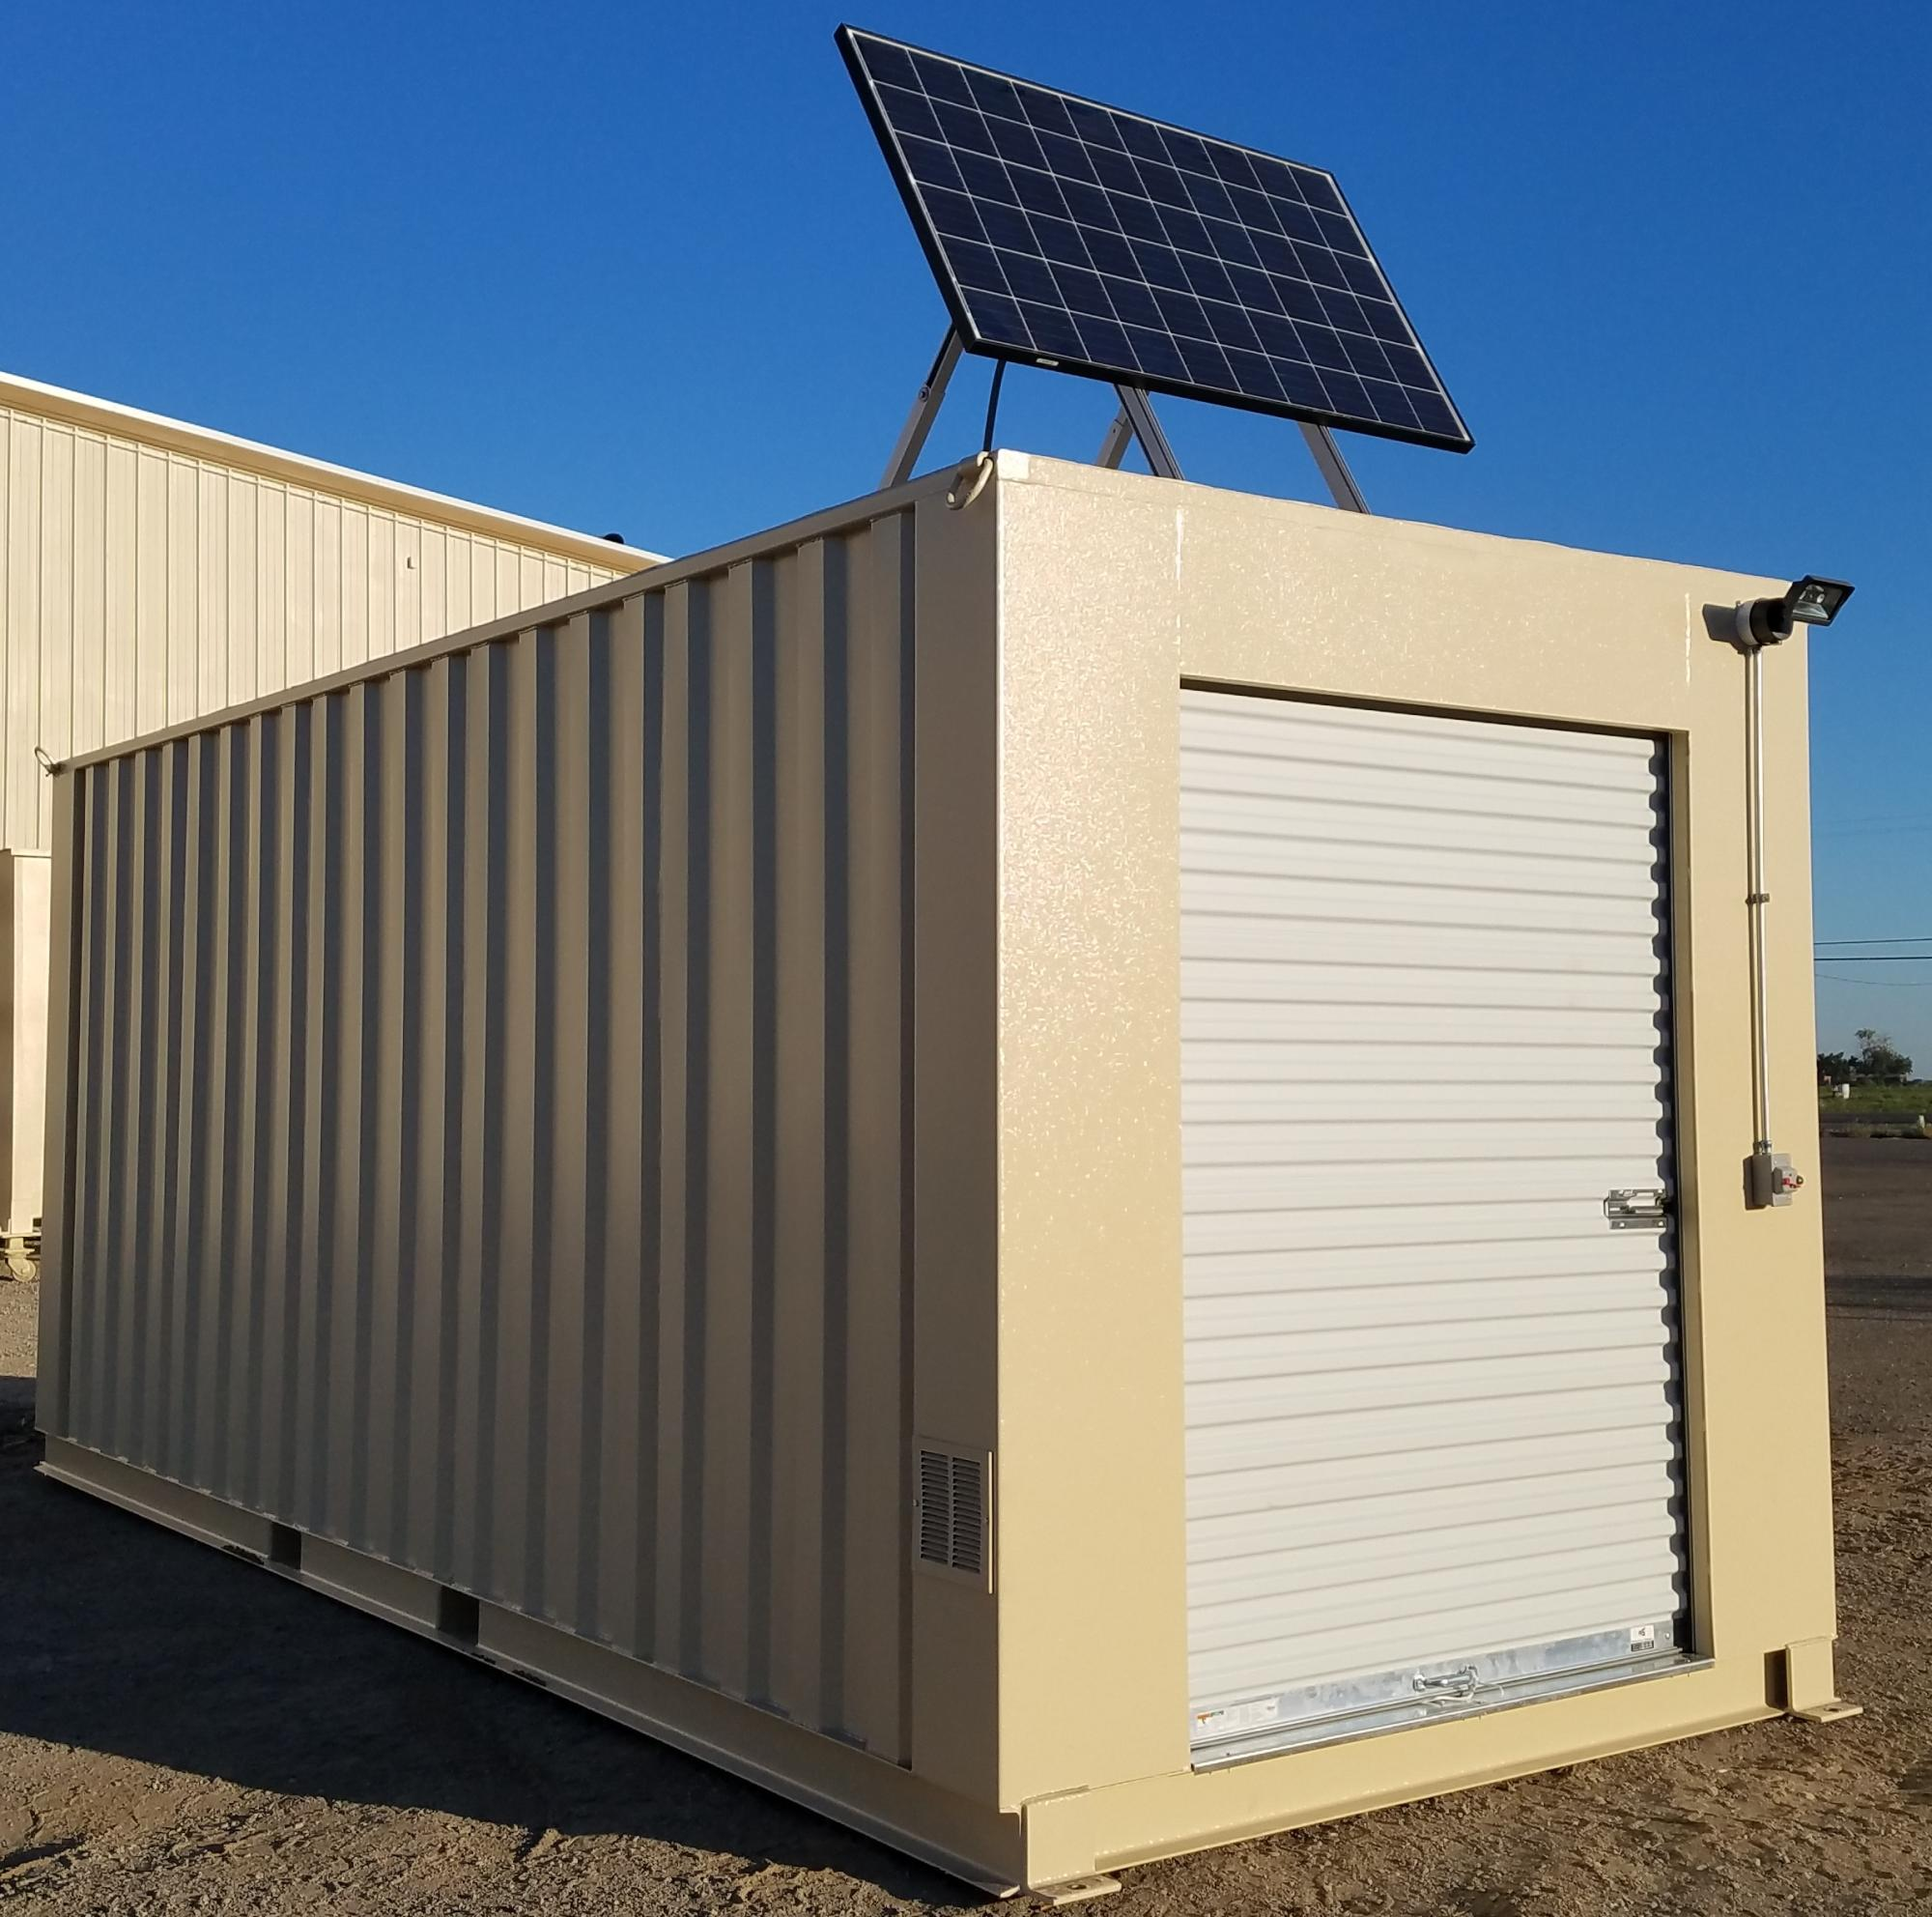 Delicieux Prefabricated Portable Buildings And Storage Containers   Los Banos, CA